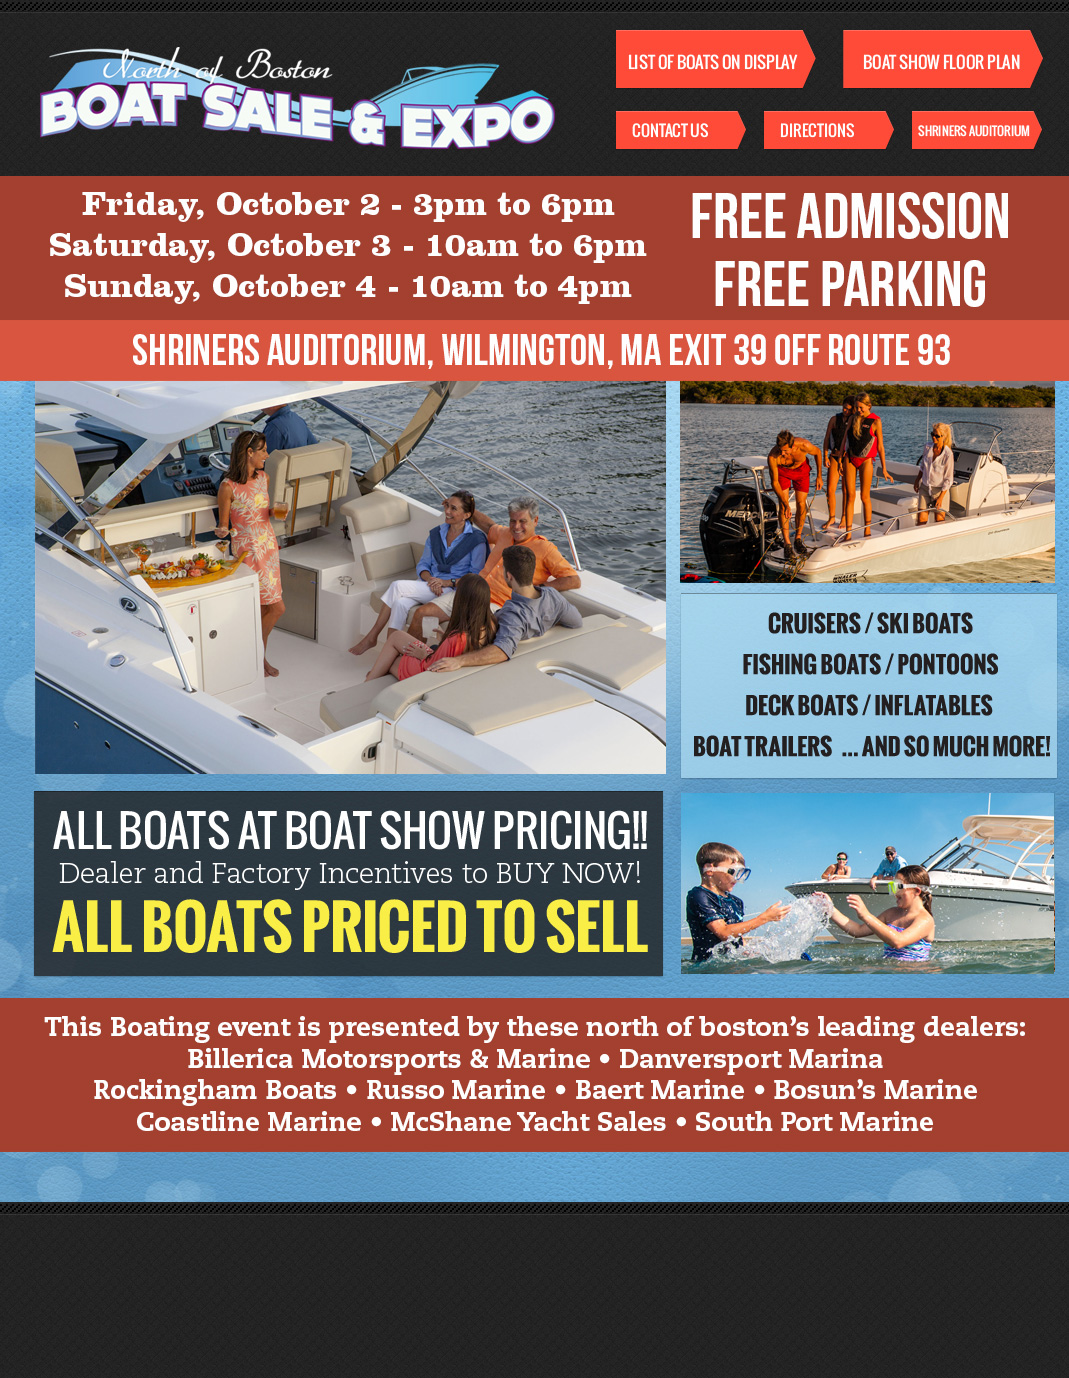 North of Boston Boat Sale & Expo Coming To Wilmington